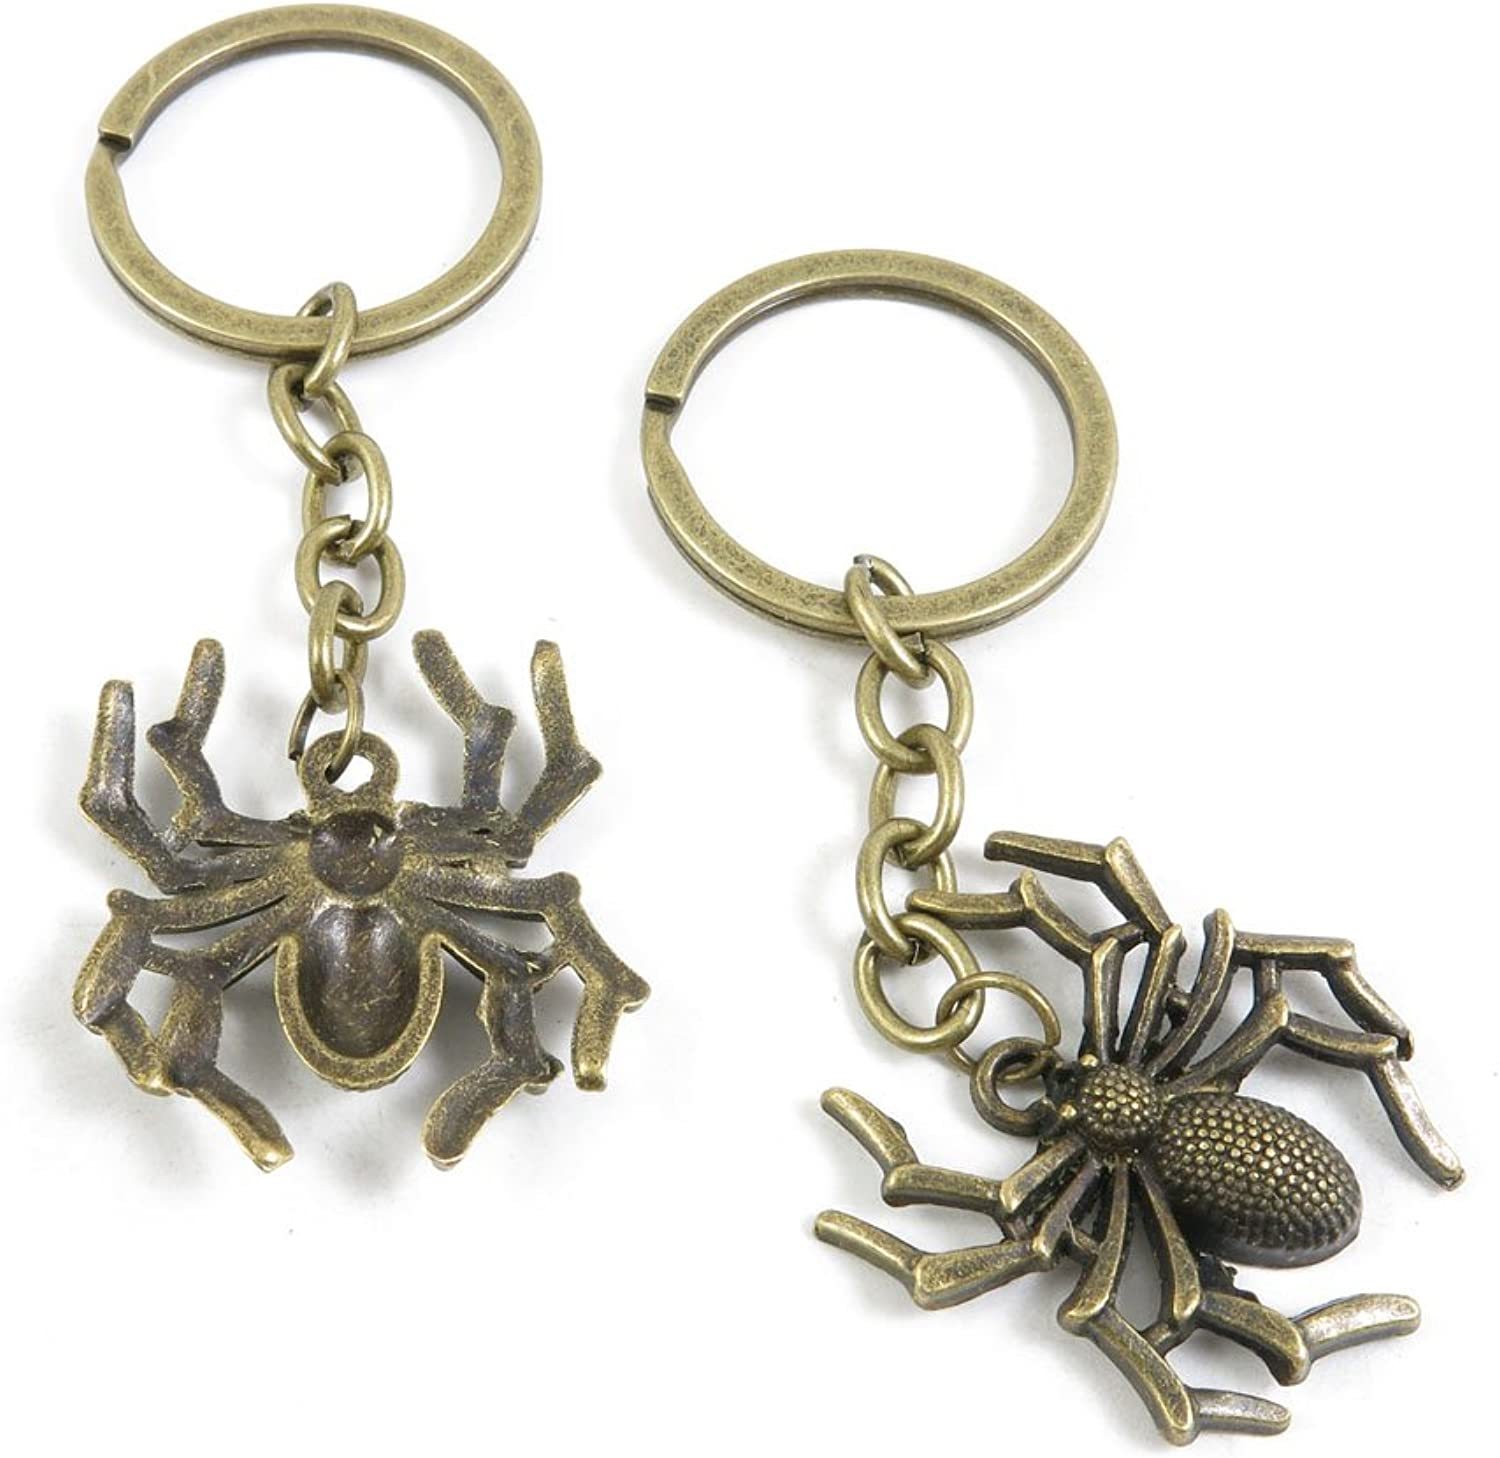 140 Pieces Fashion Jewelry Keyring Keychain Door Car Key Tag Ring Chain Supplier Supply Wholesale Bulk Lots K1WY3 Spider